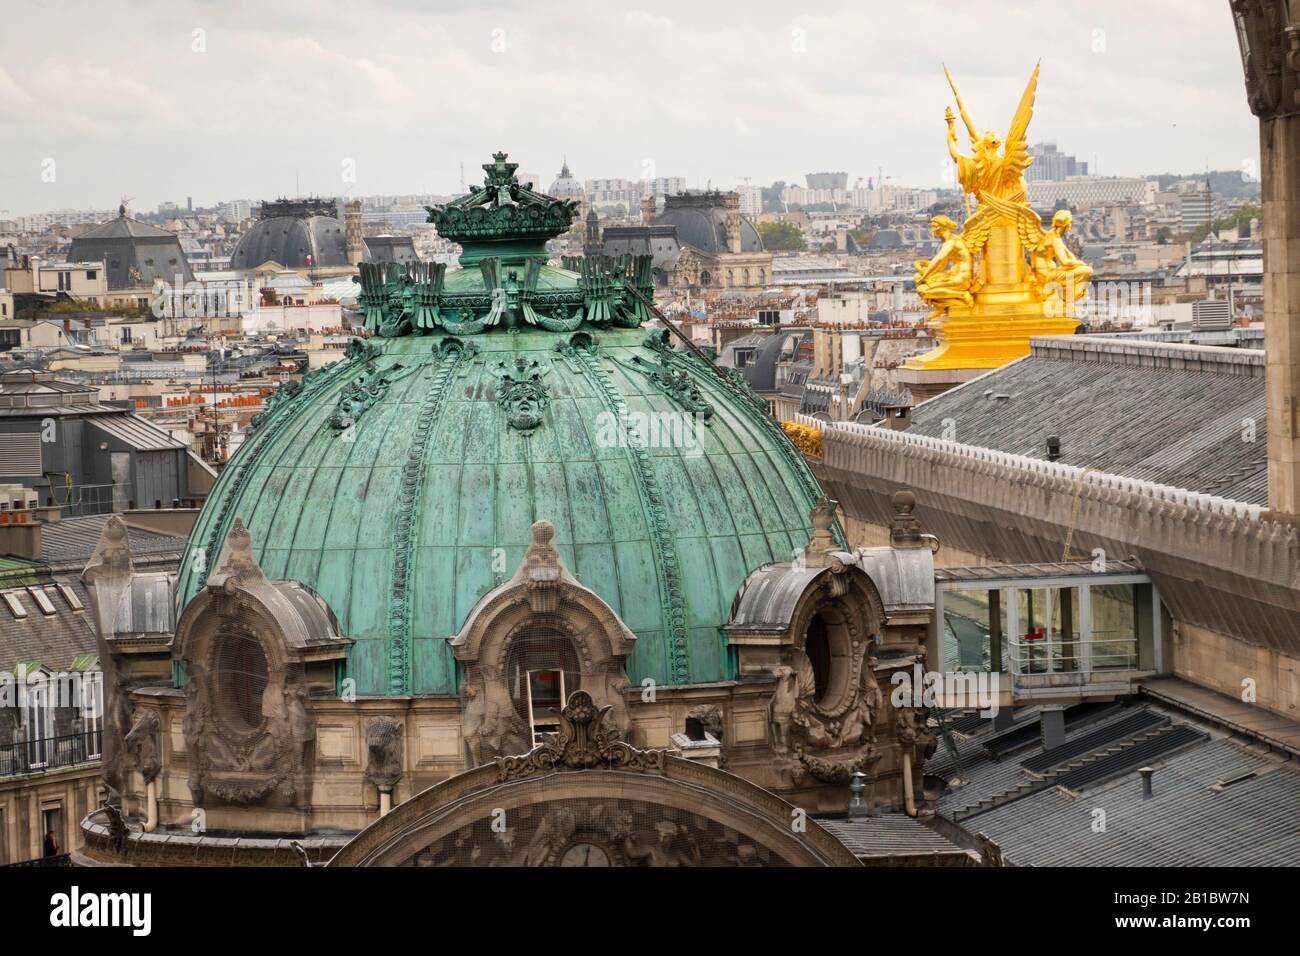 Paris Opera house building scene from Galeries Lafayette rooftop Paris France Stock Photo